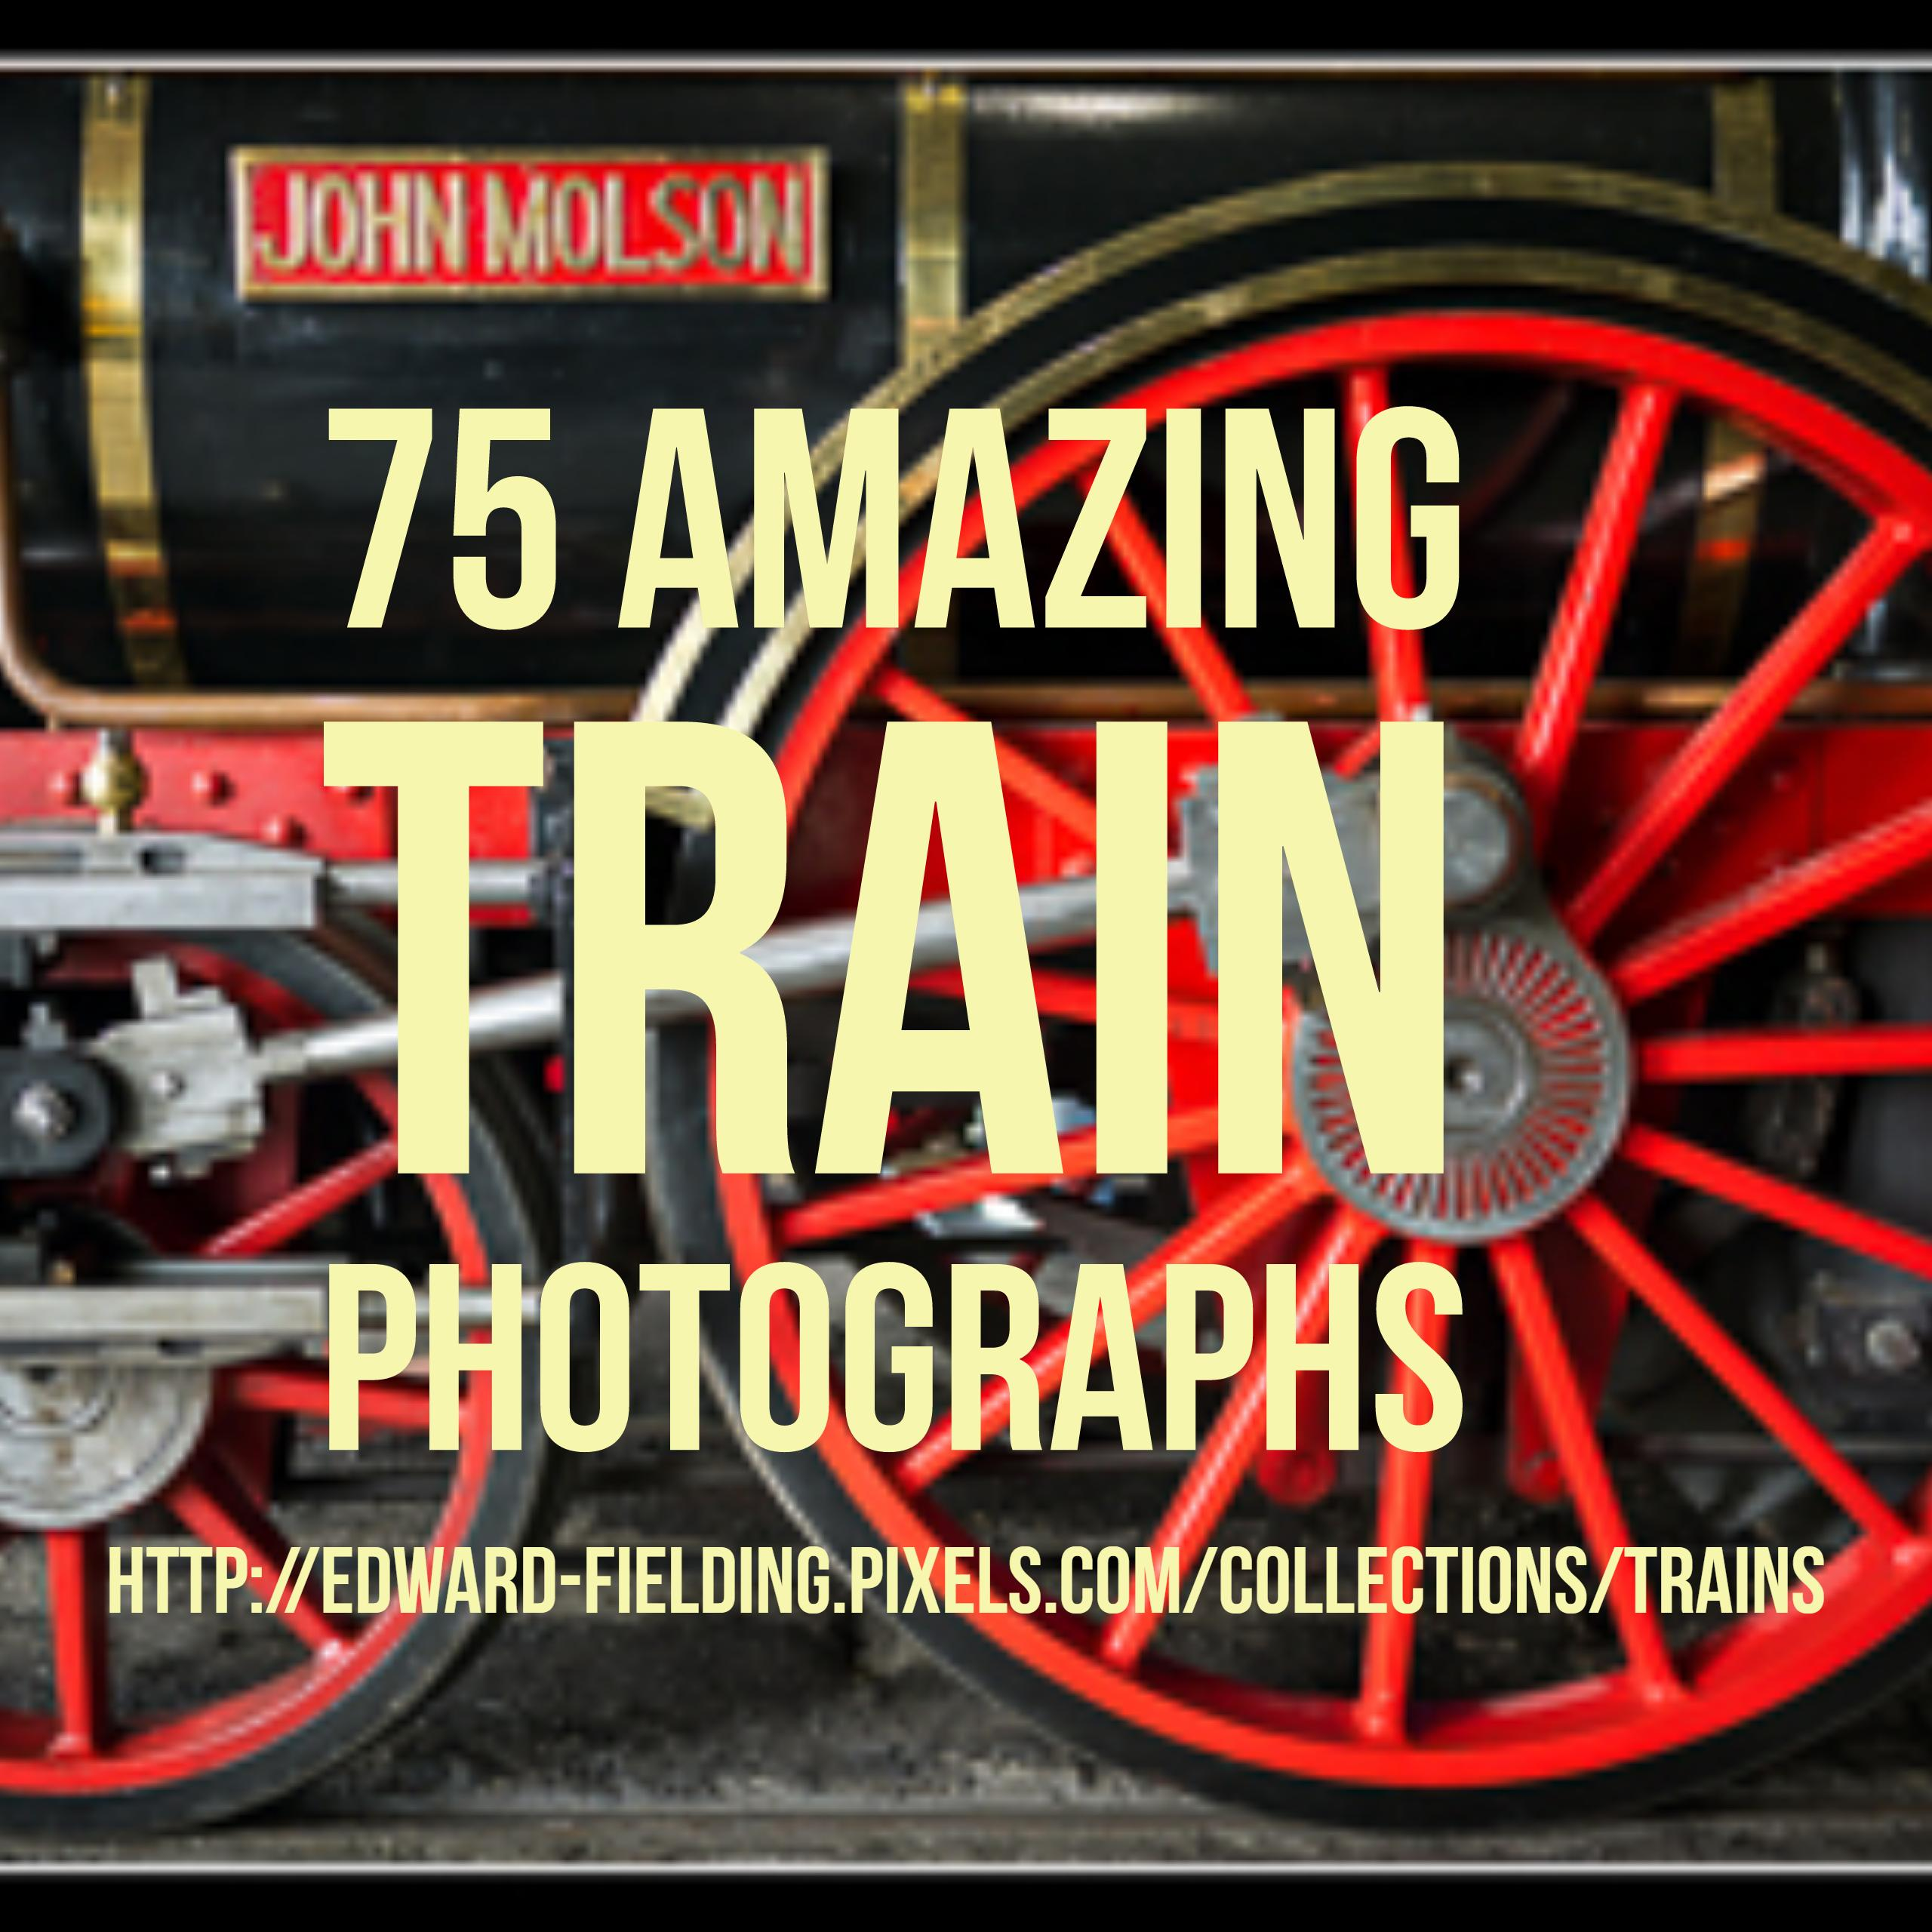 75 Amazing Train Photographs